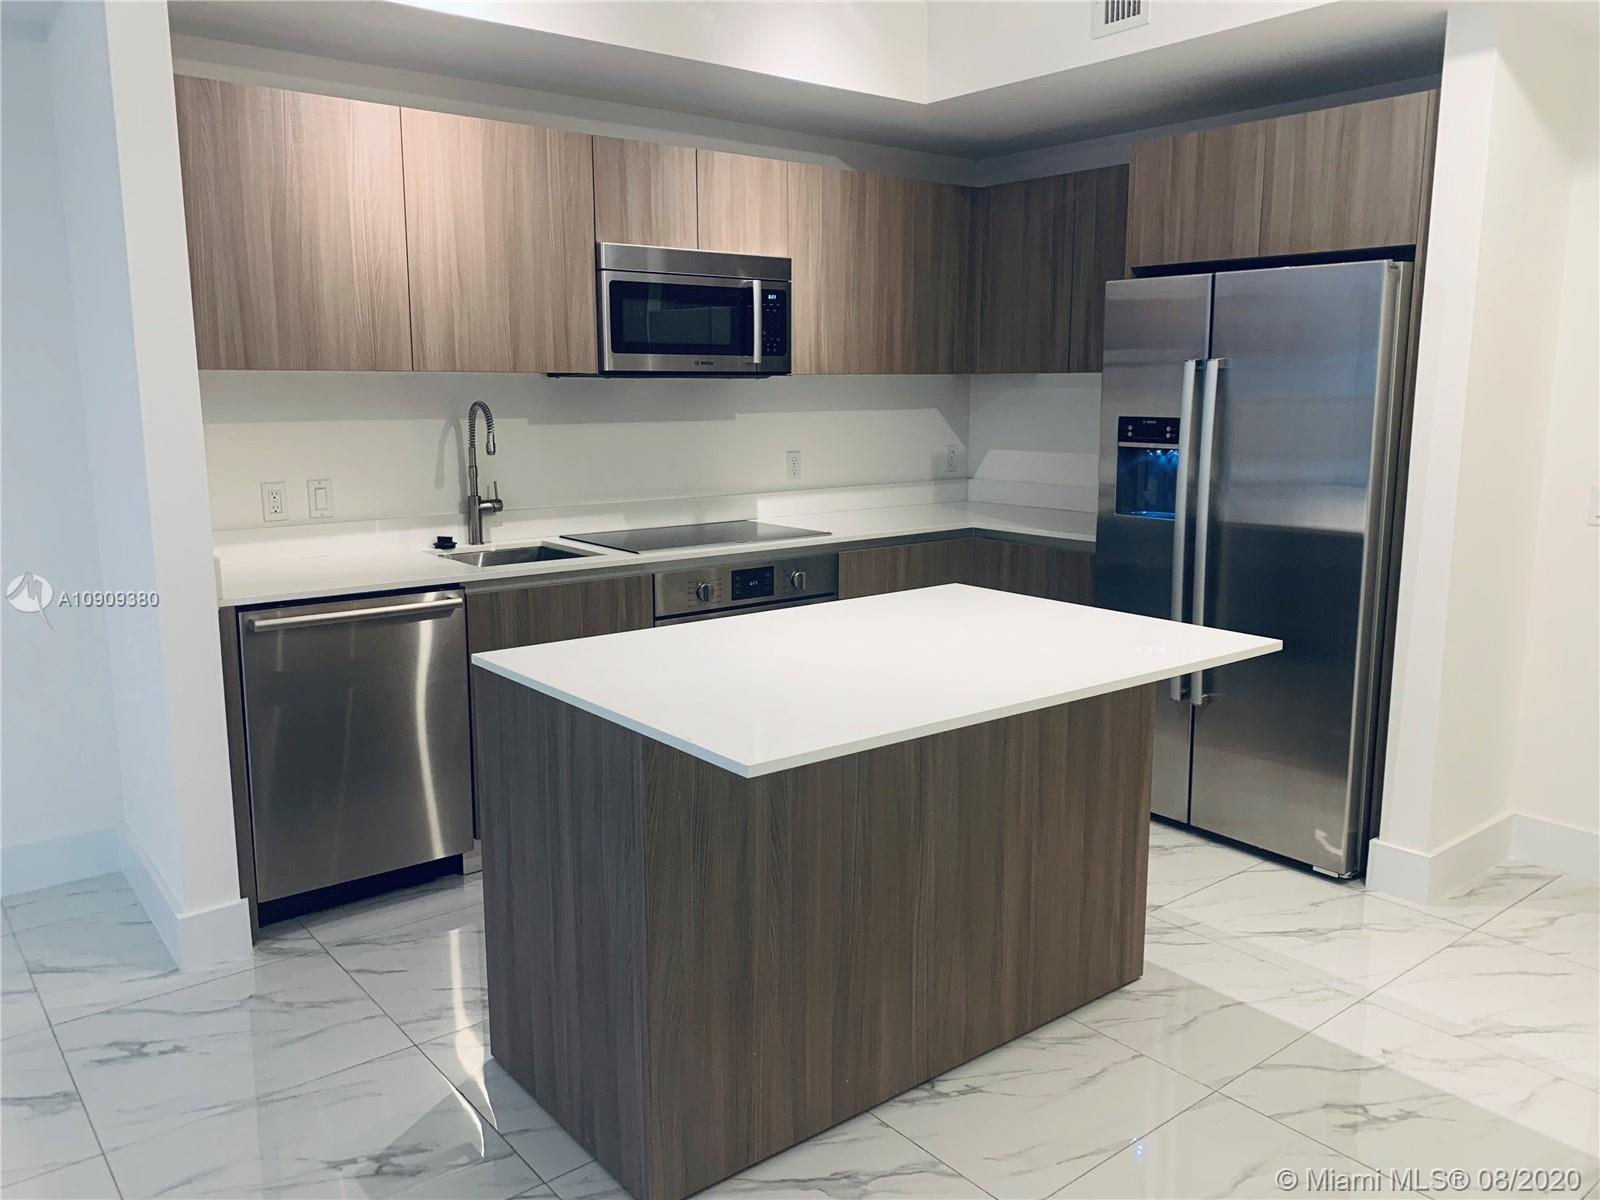 Priced to sale, great opportunity! Spacious 1 bed 1 bath apartment in a modern boutique style buildi